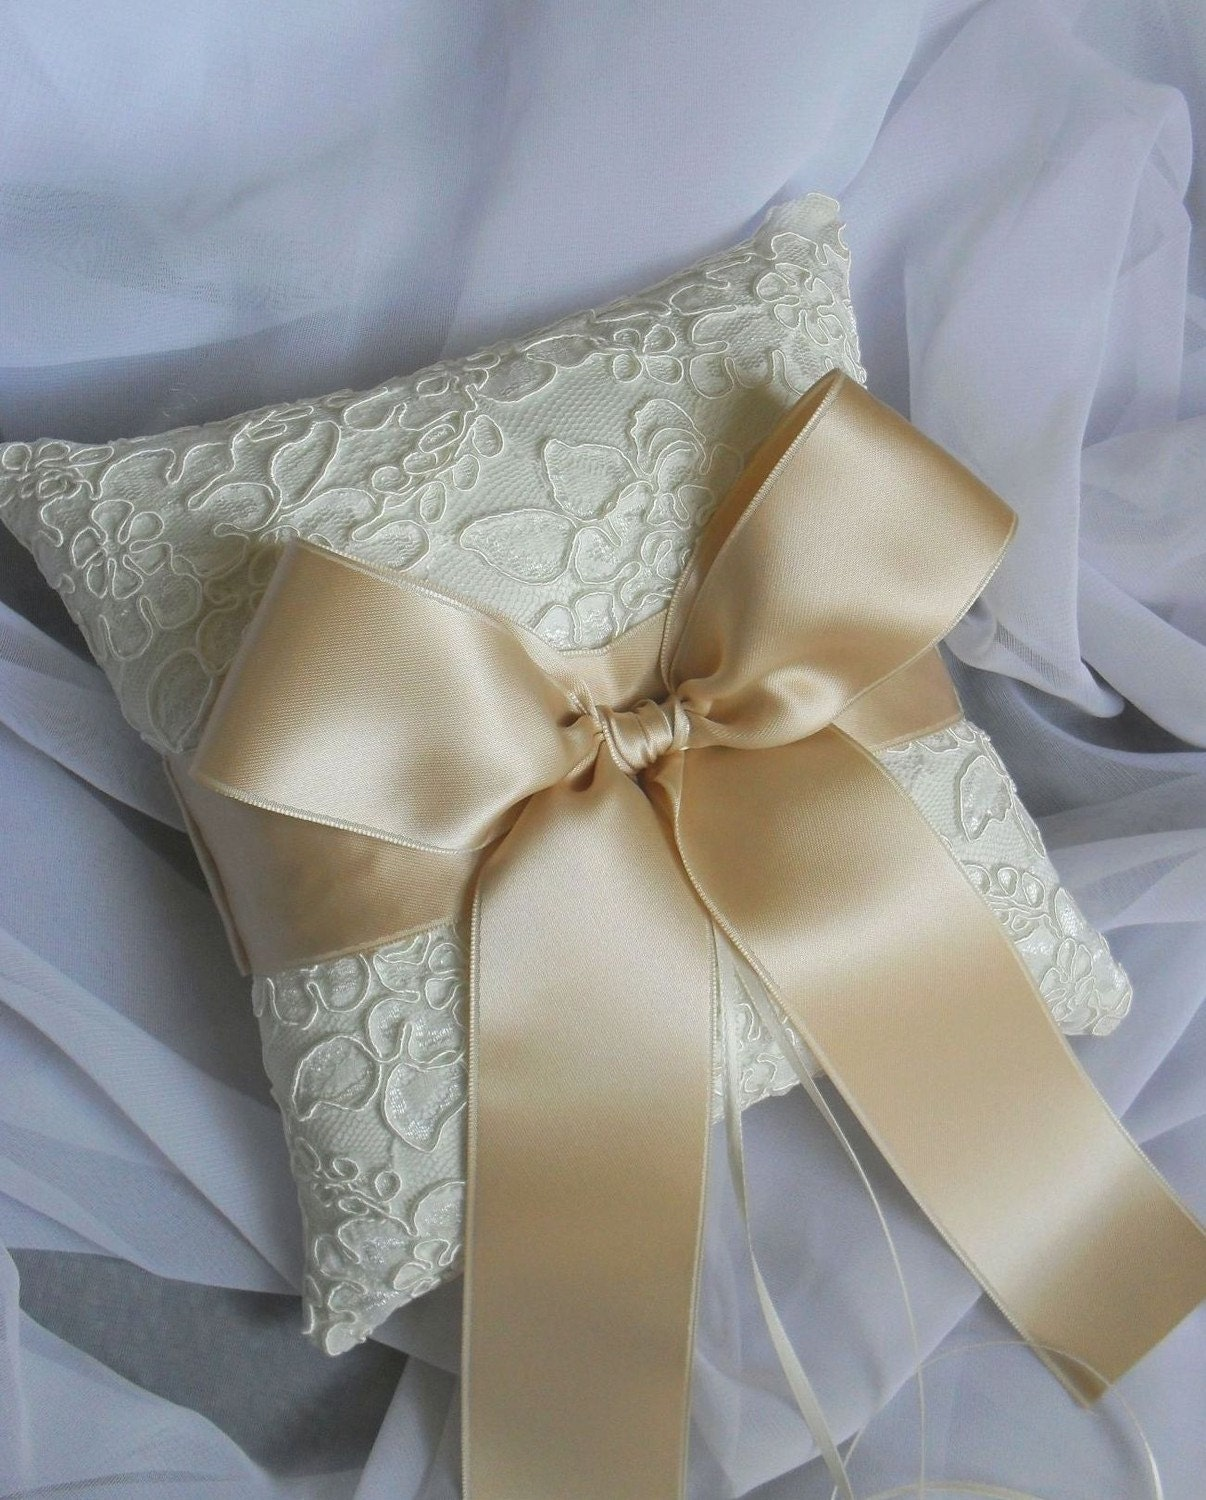 Inspirational ring pillow and guestbook photo 2